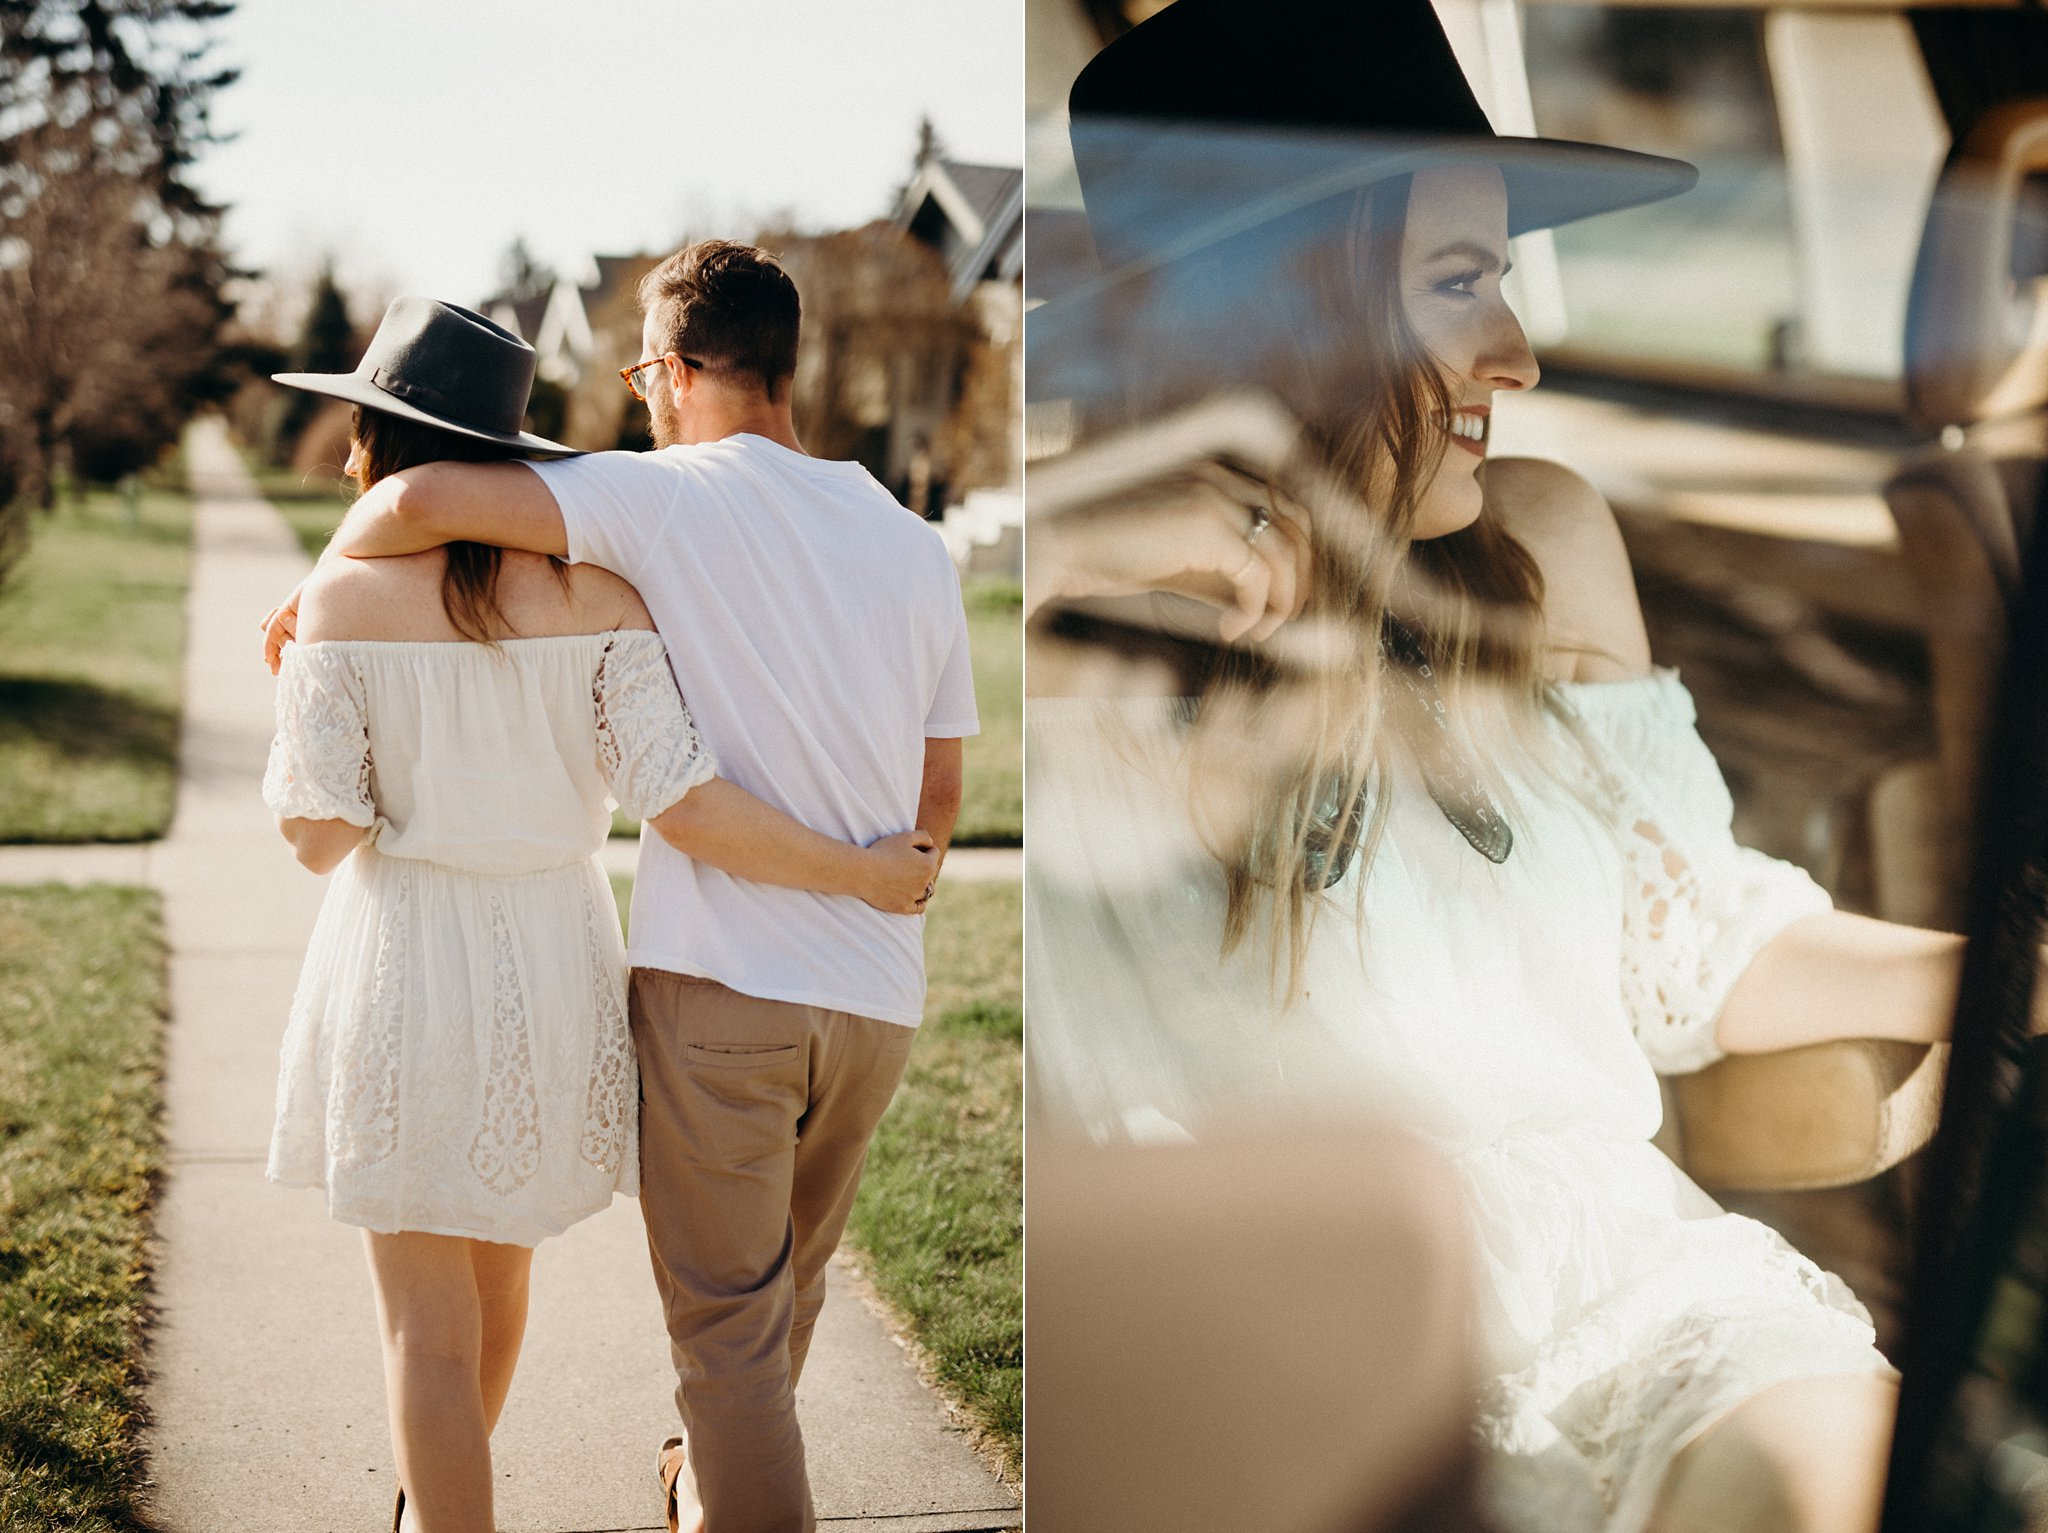 kaihla_tonai_intimate_wedding_elopement_photographer_5903.jpg